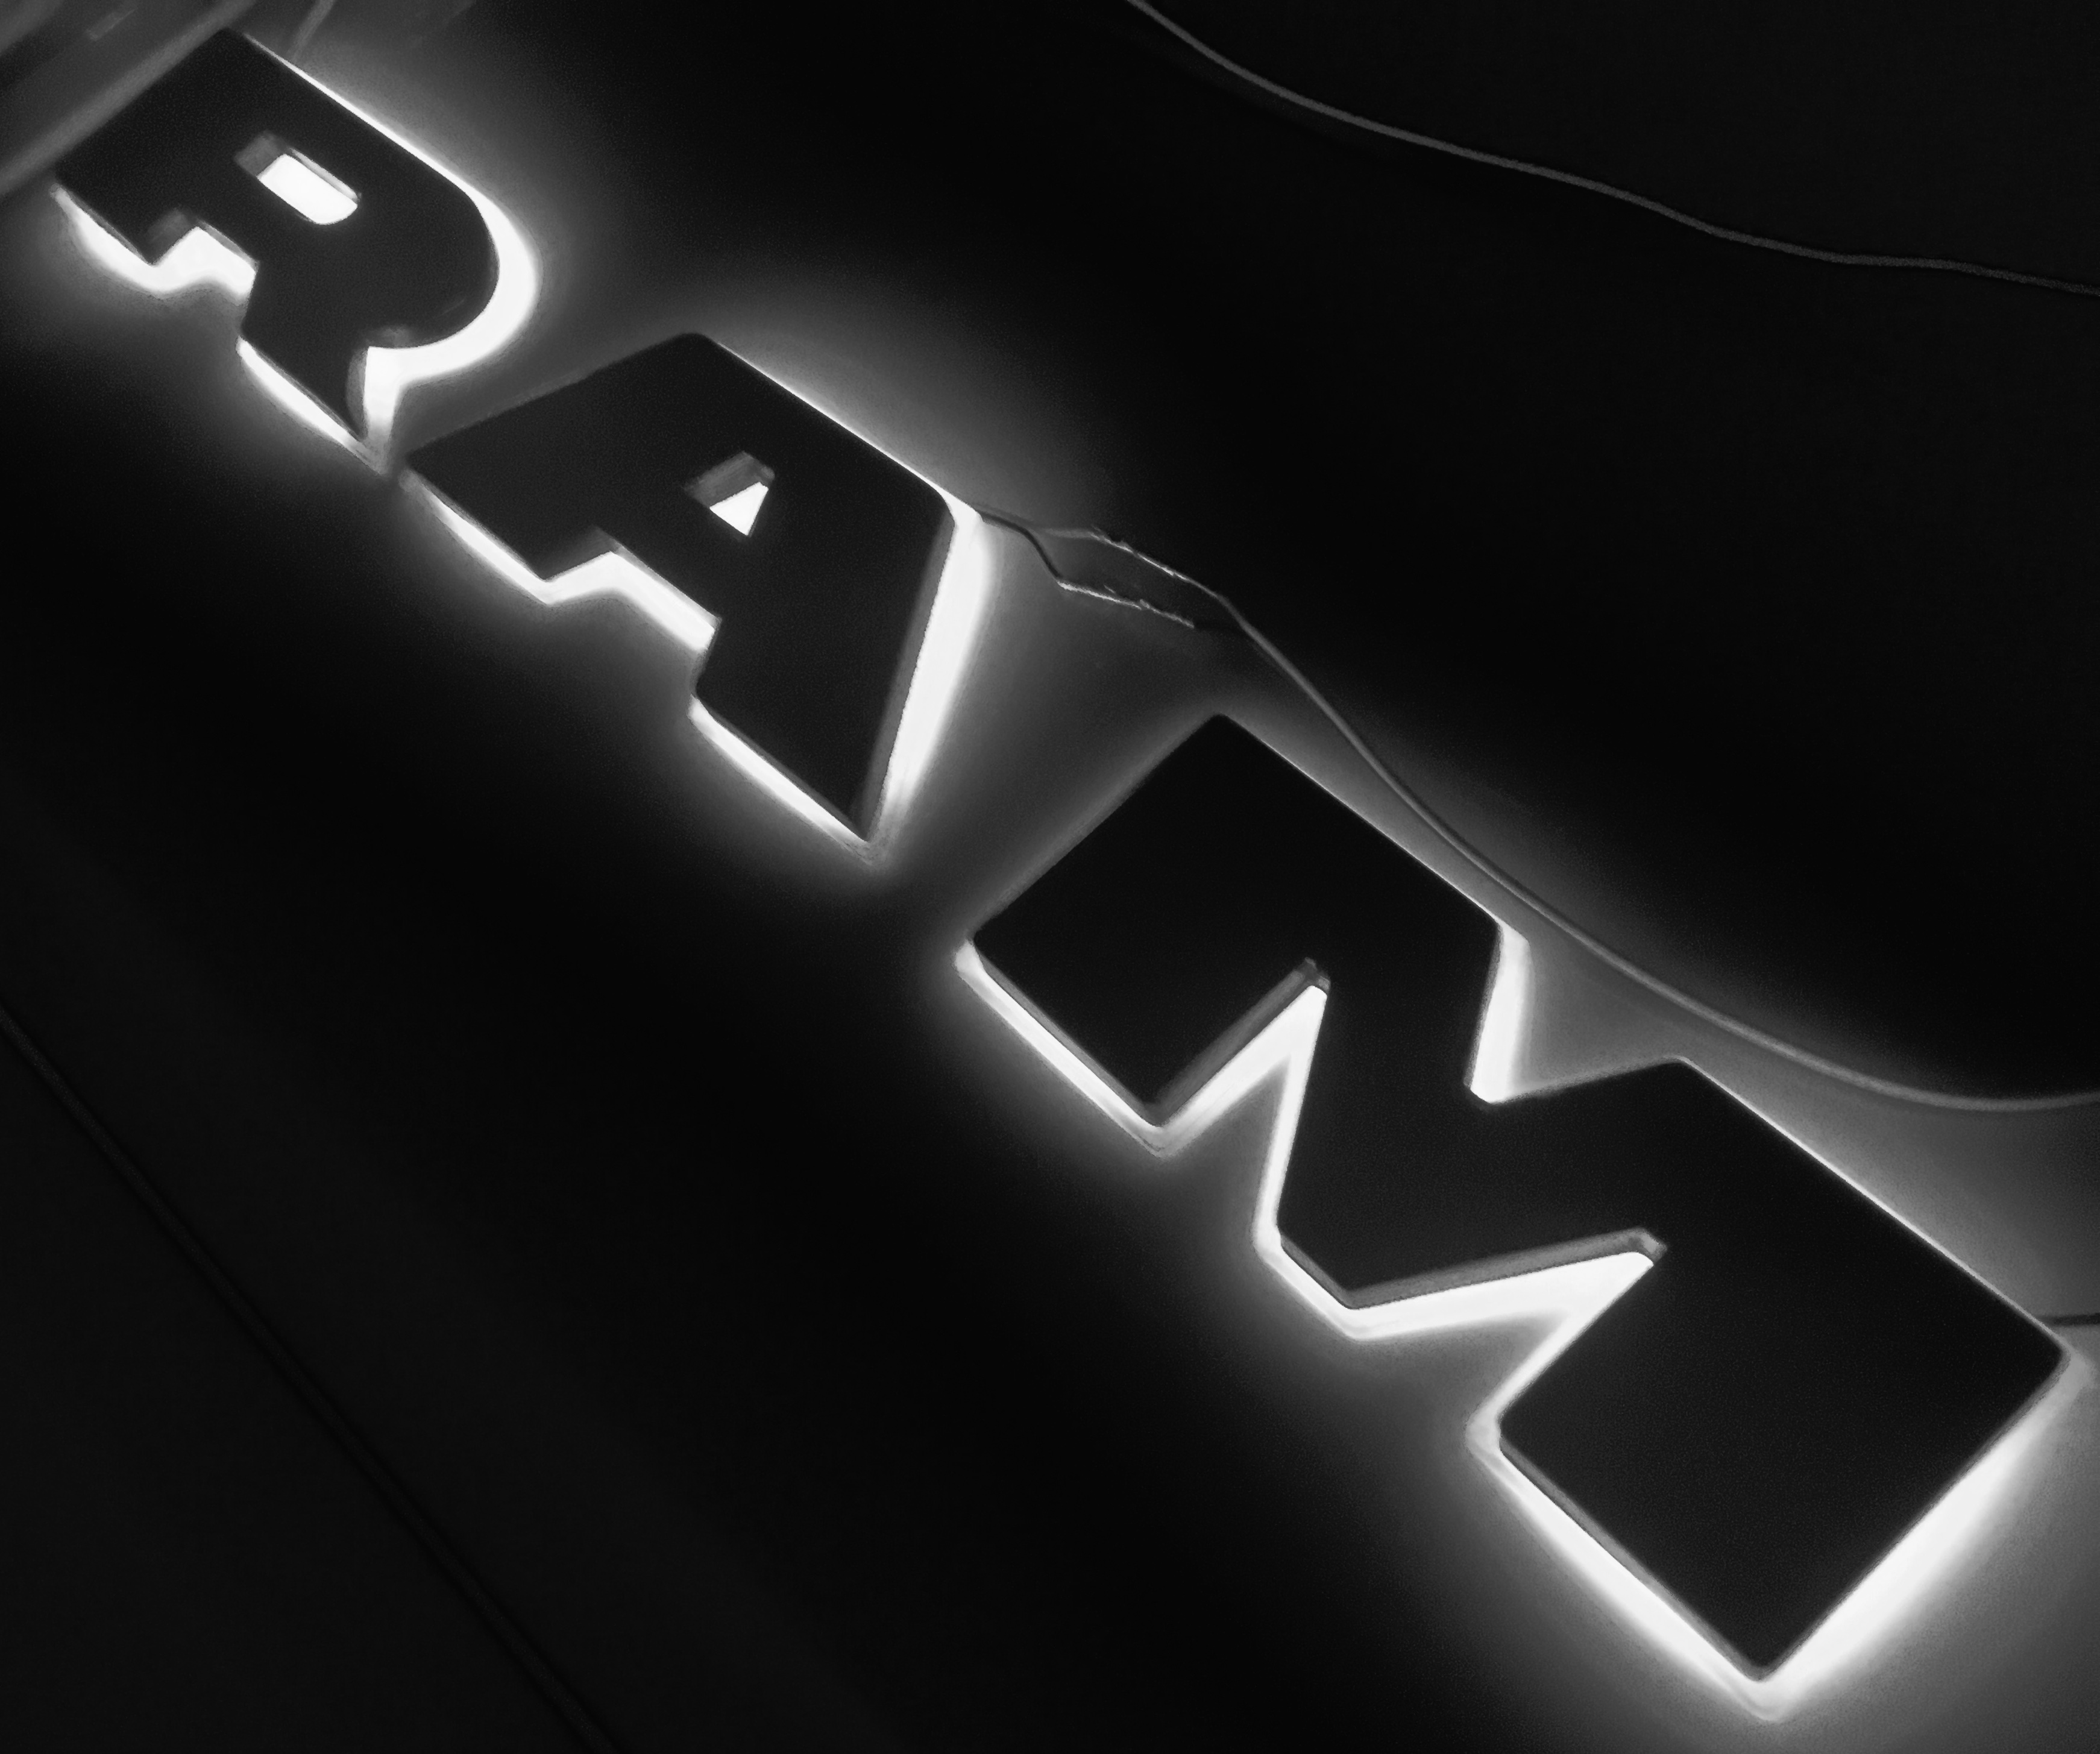 Custom Dodge Ram Led Backlit Grill Letters Harmon Customs Make A Series From The Home